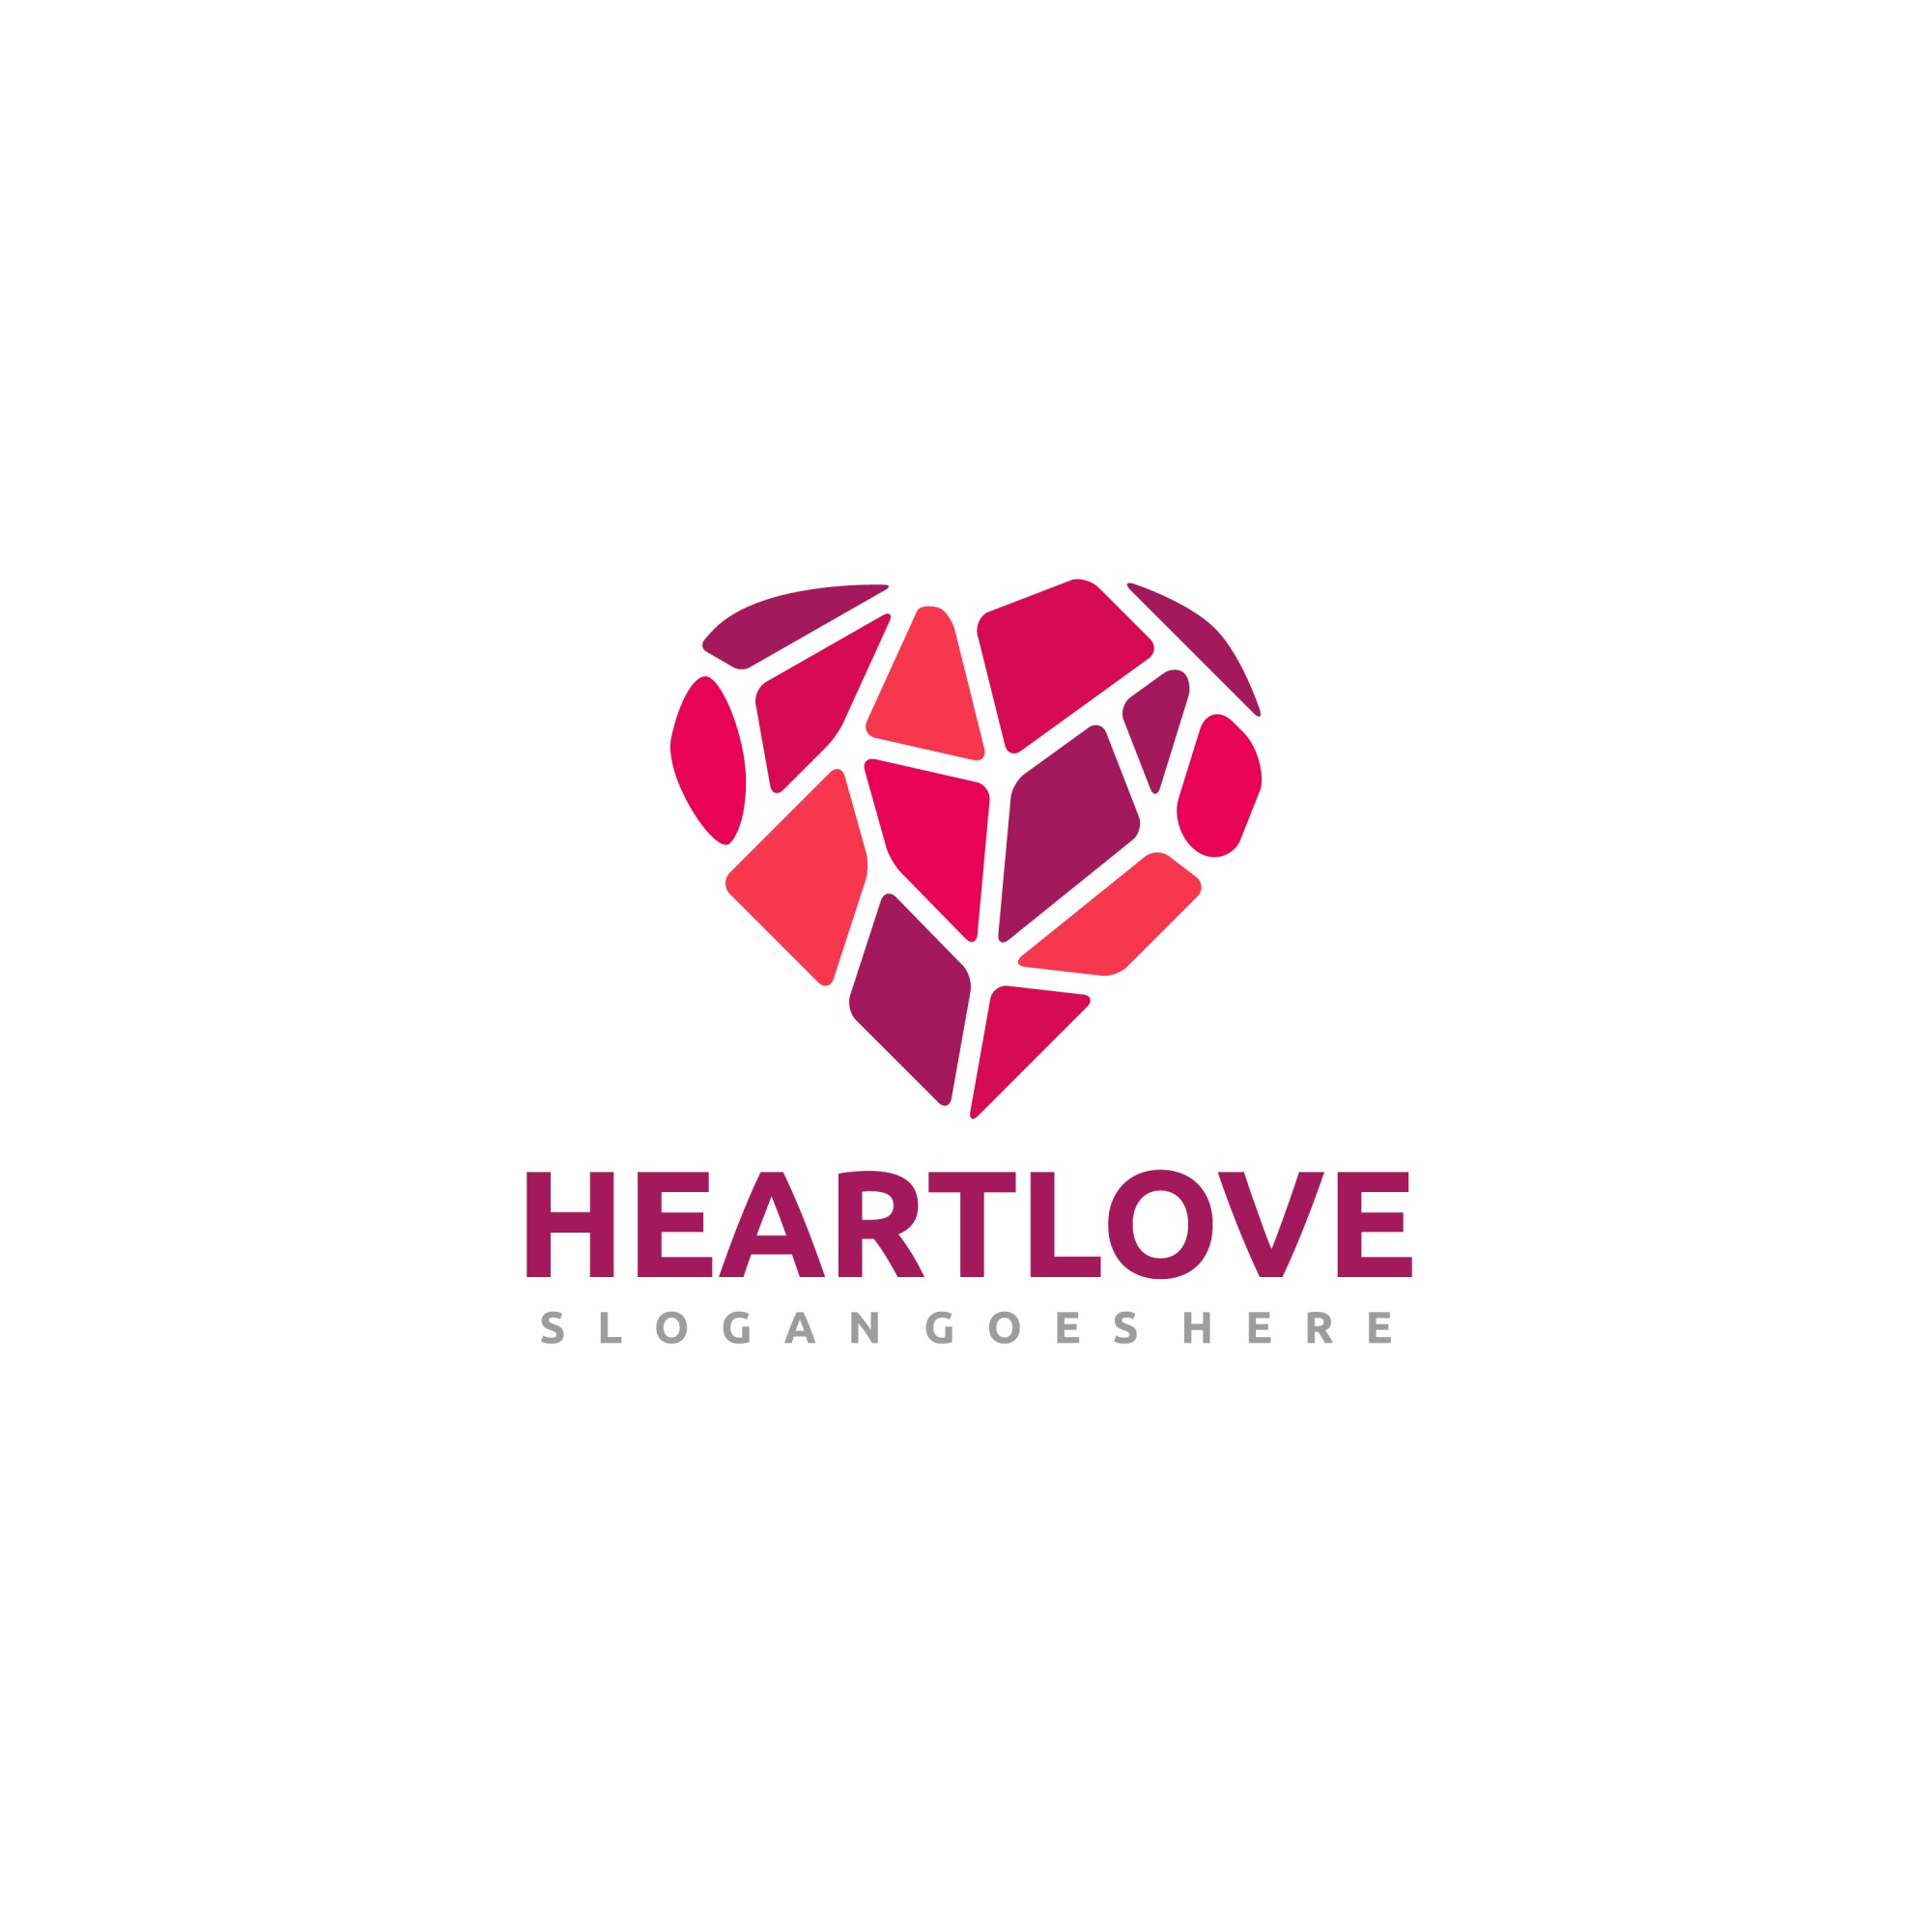 Low poly heart logo